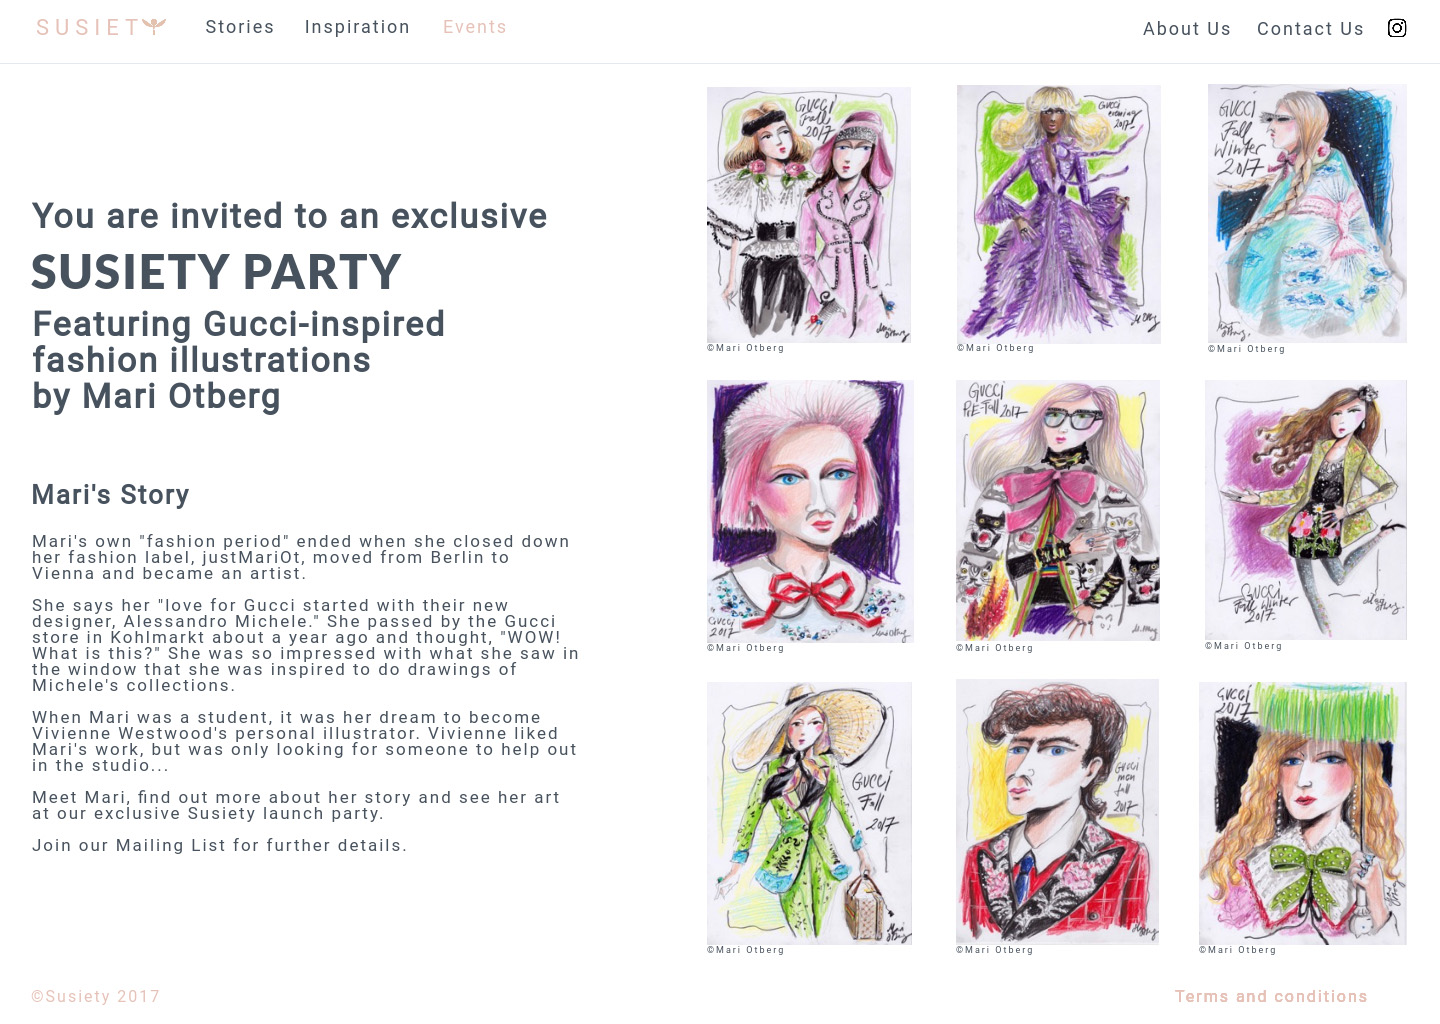 event proposal - Launch party proposal for Kering Corporation - in collaboration with artist, Mari Otberg